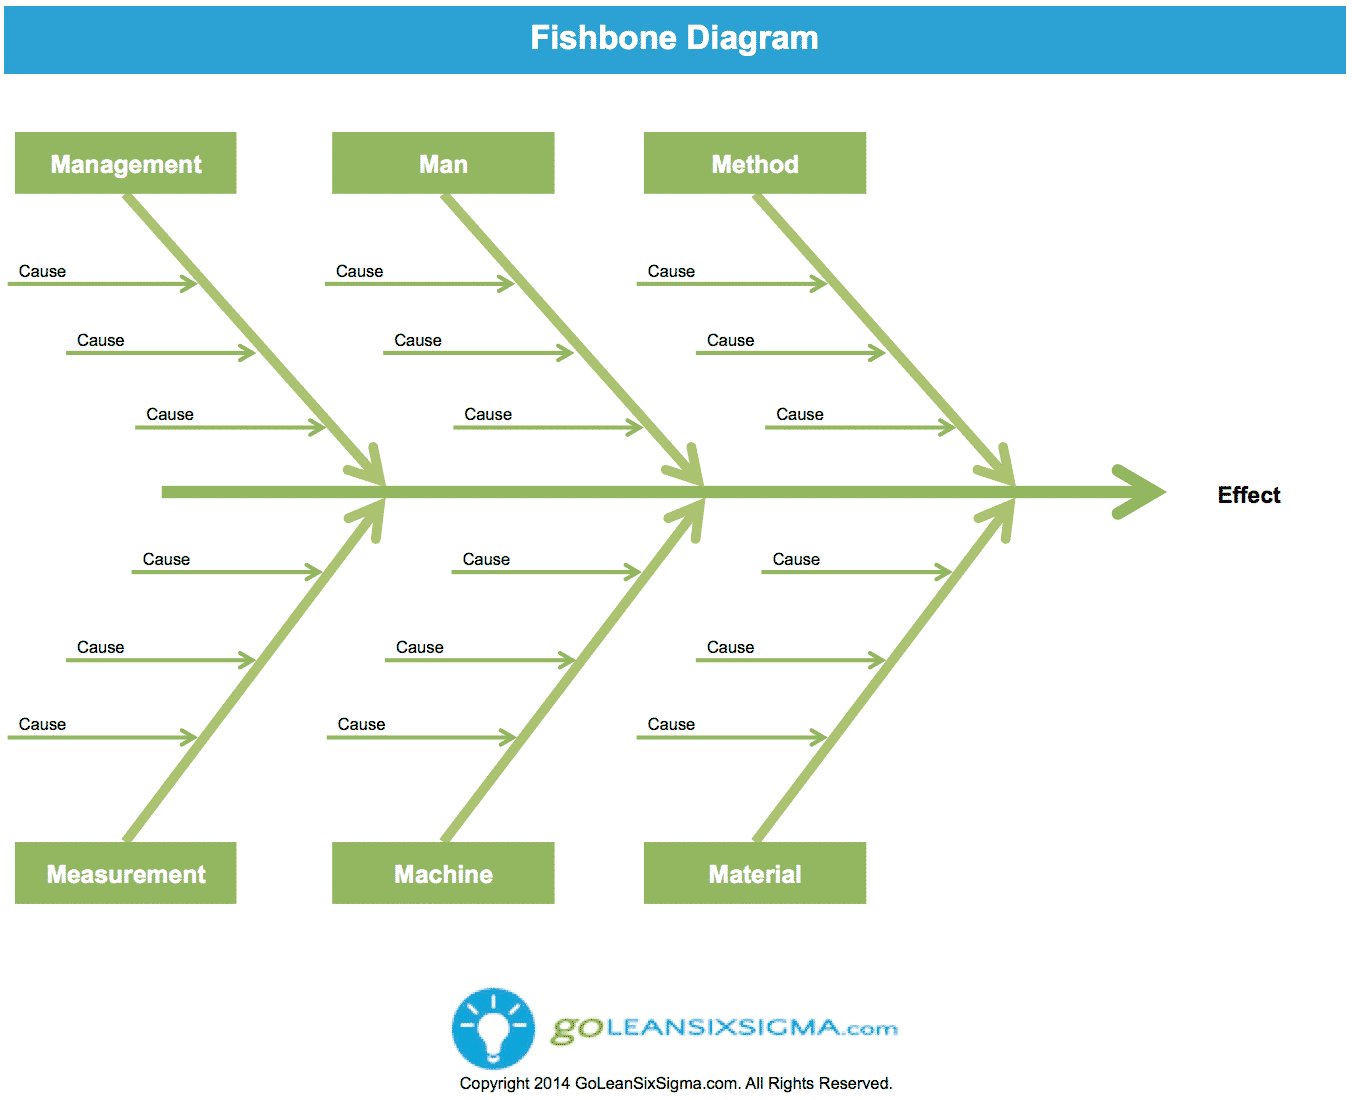 Fishbone Diagram – GoLeanSixSigma.com